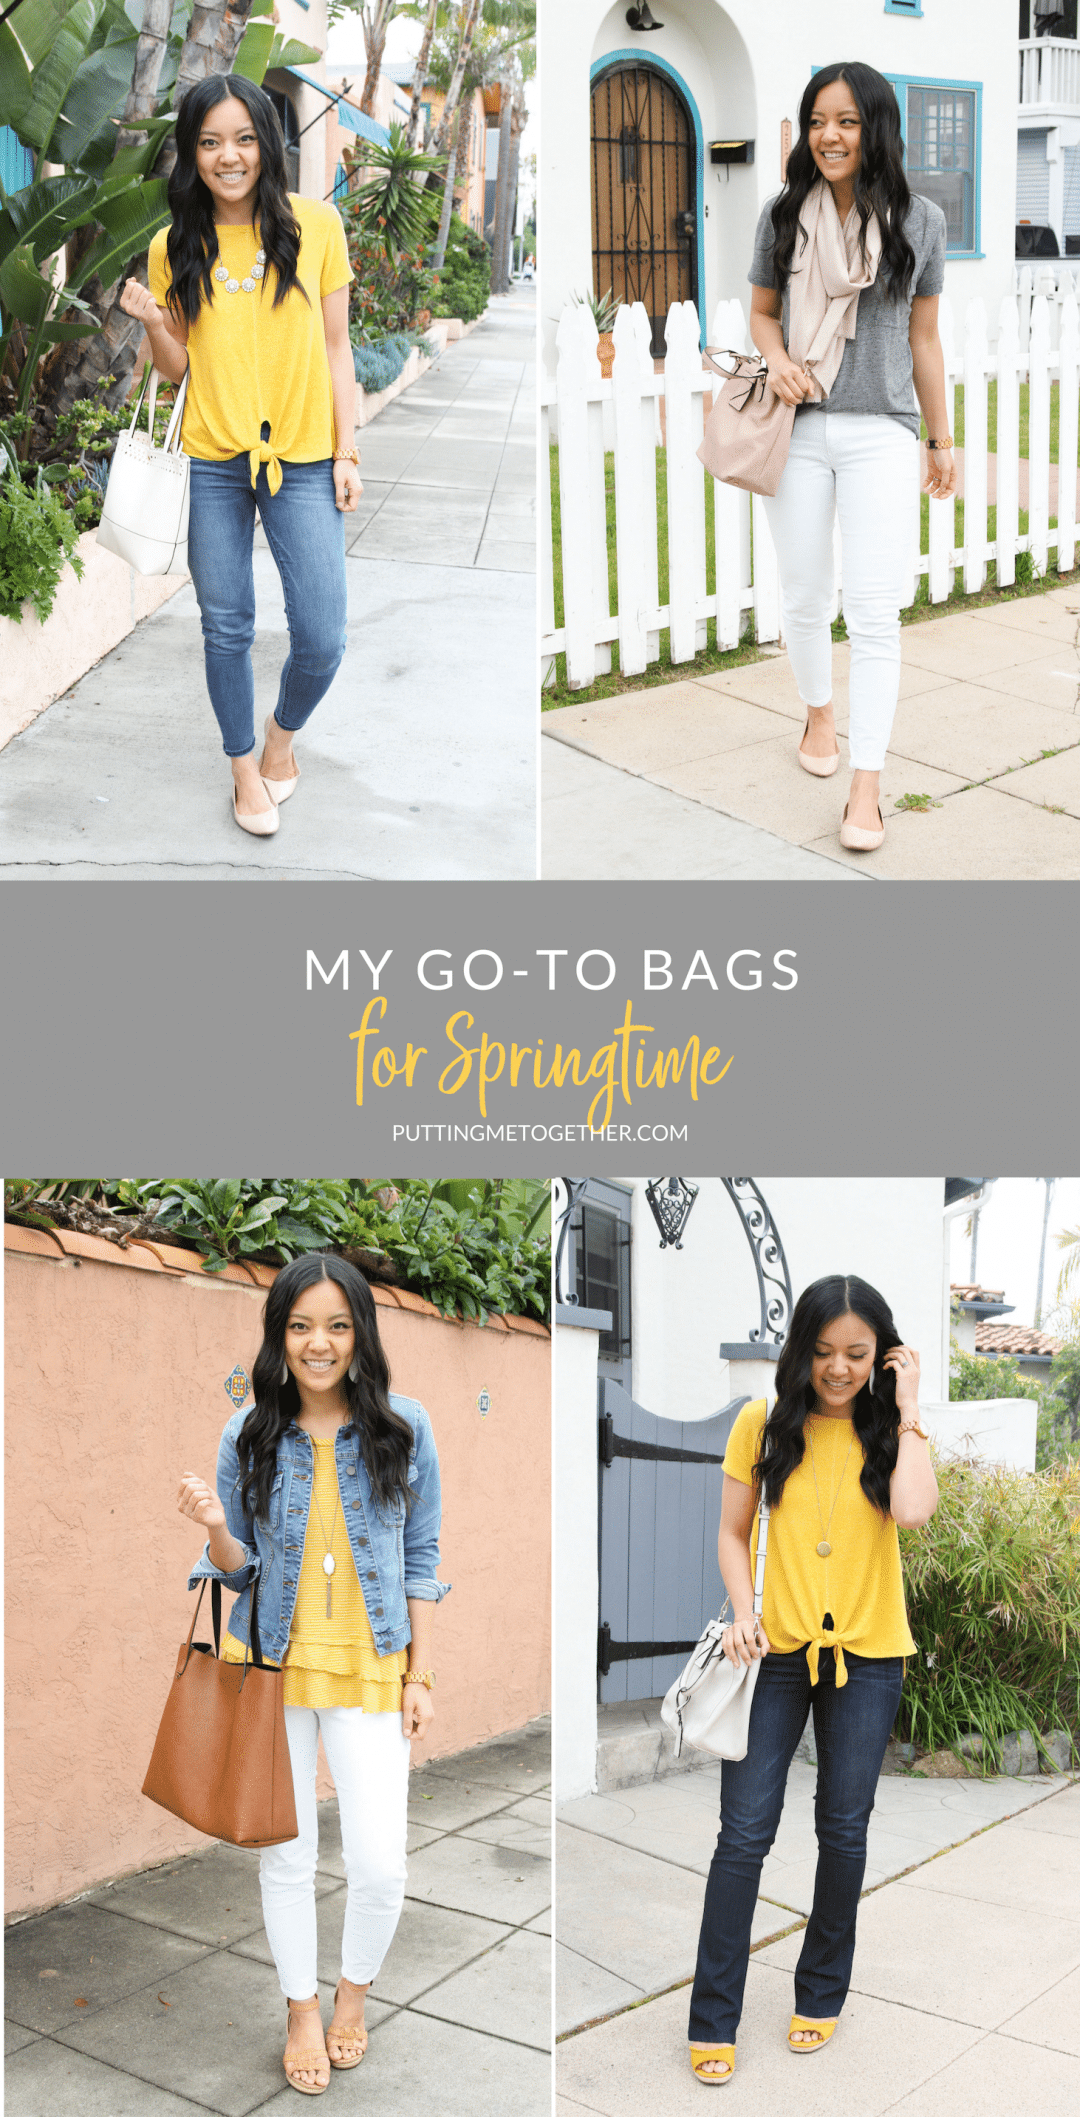 My Go-To Bags for Spring